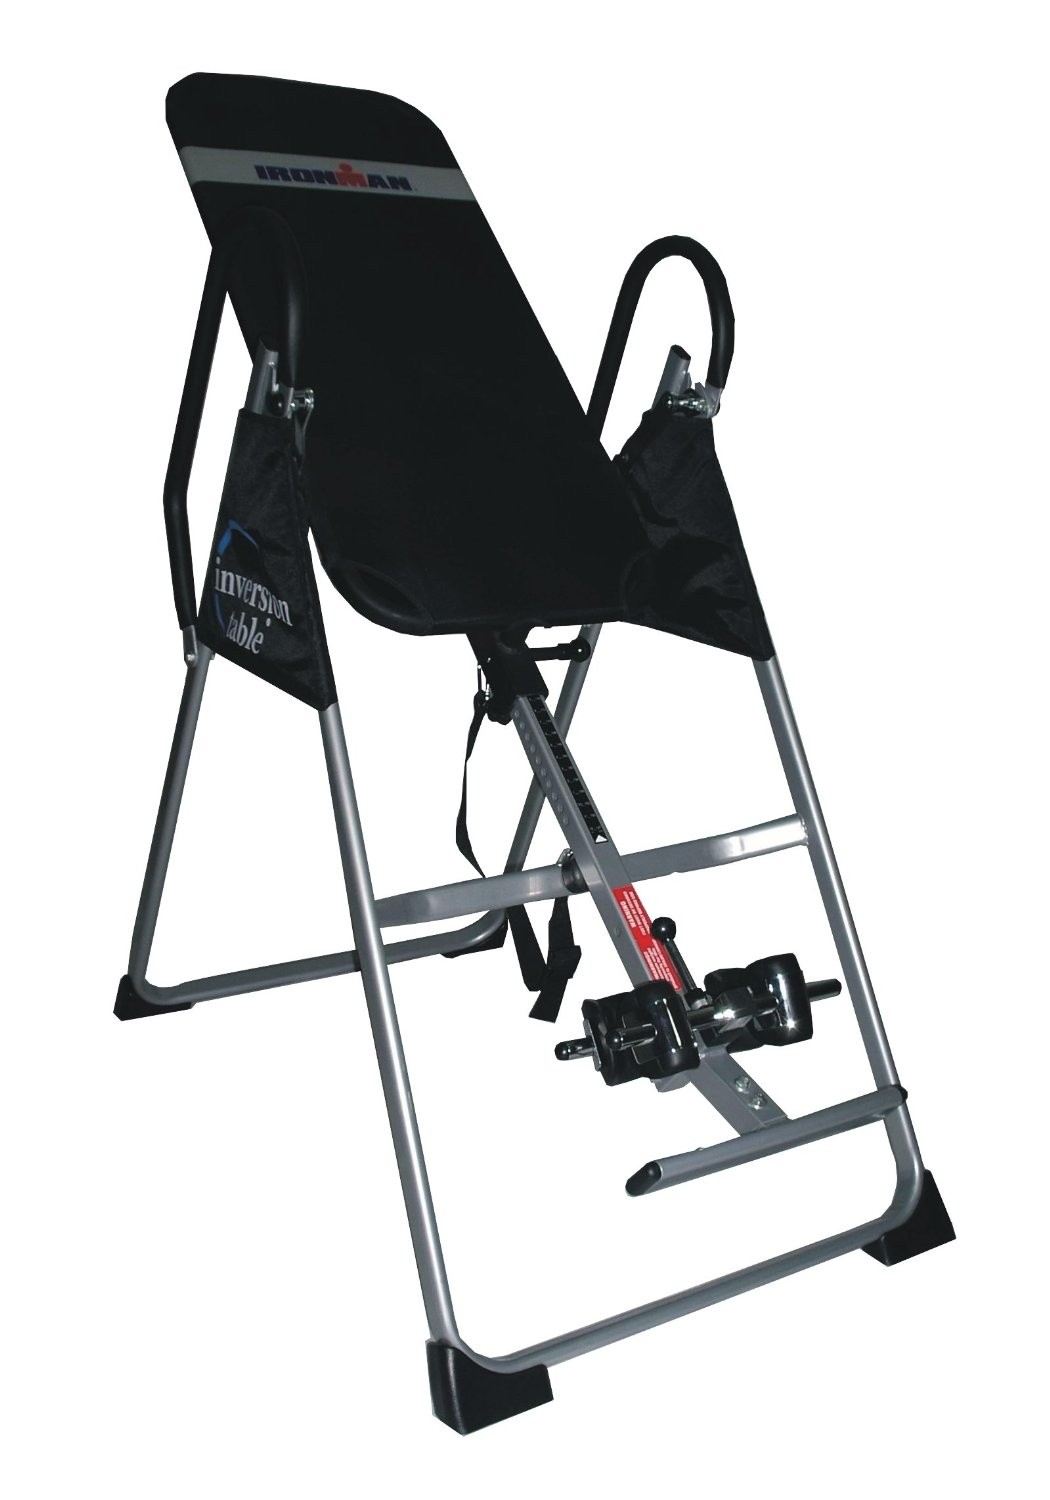 Top 10 Inversion Table Reviews — Best Models in 2020